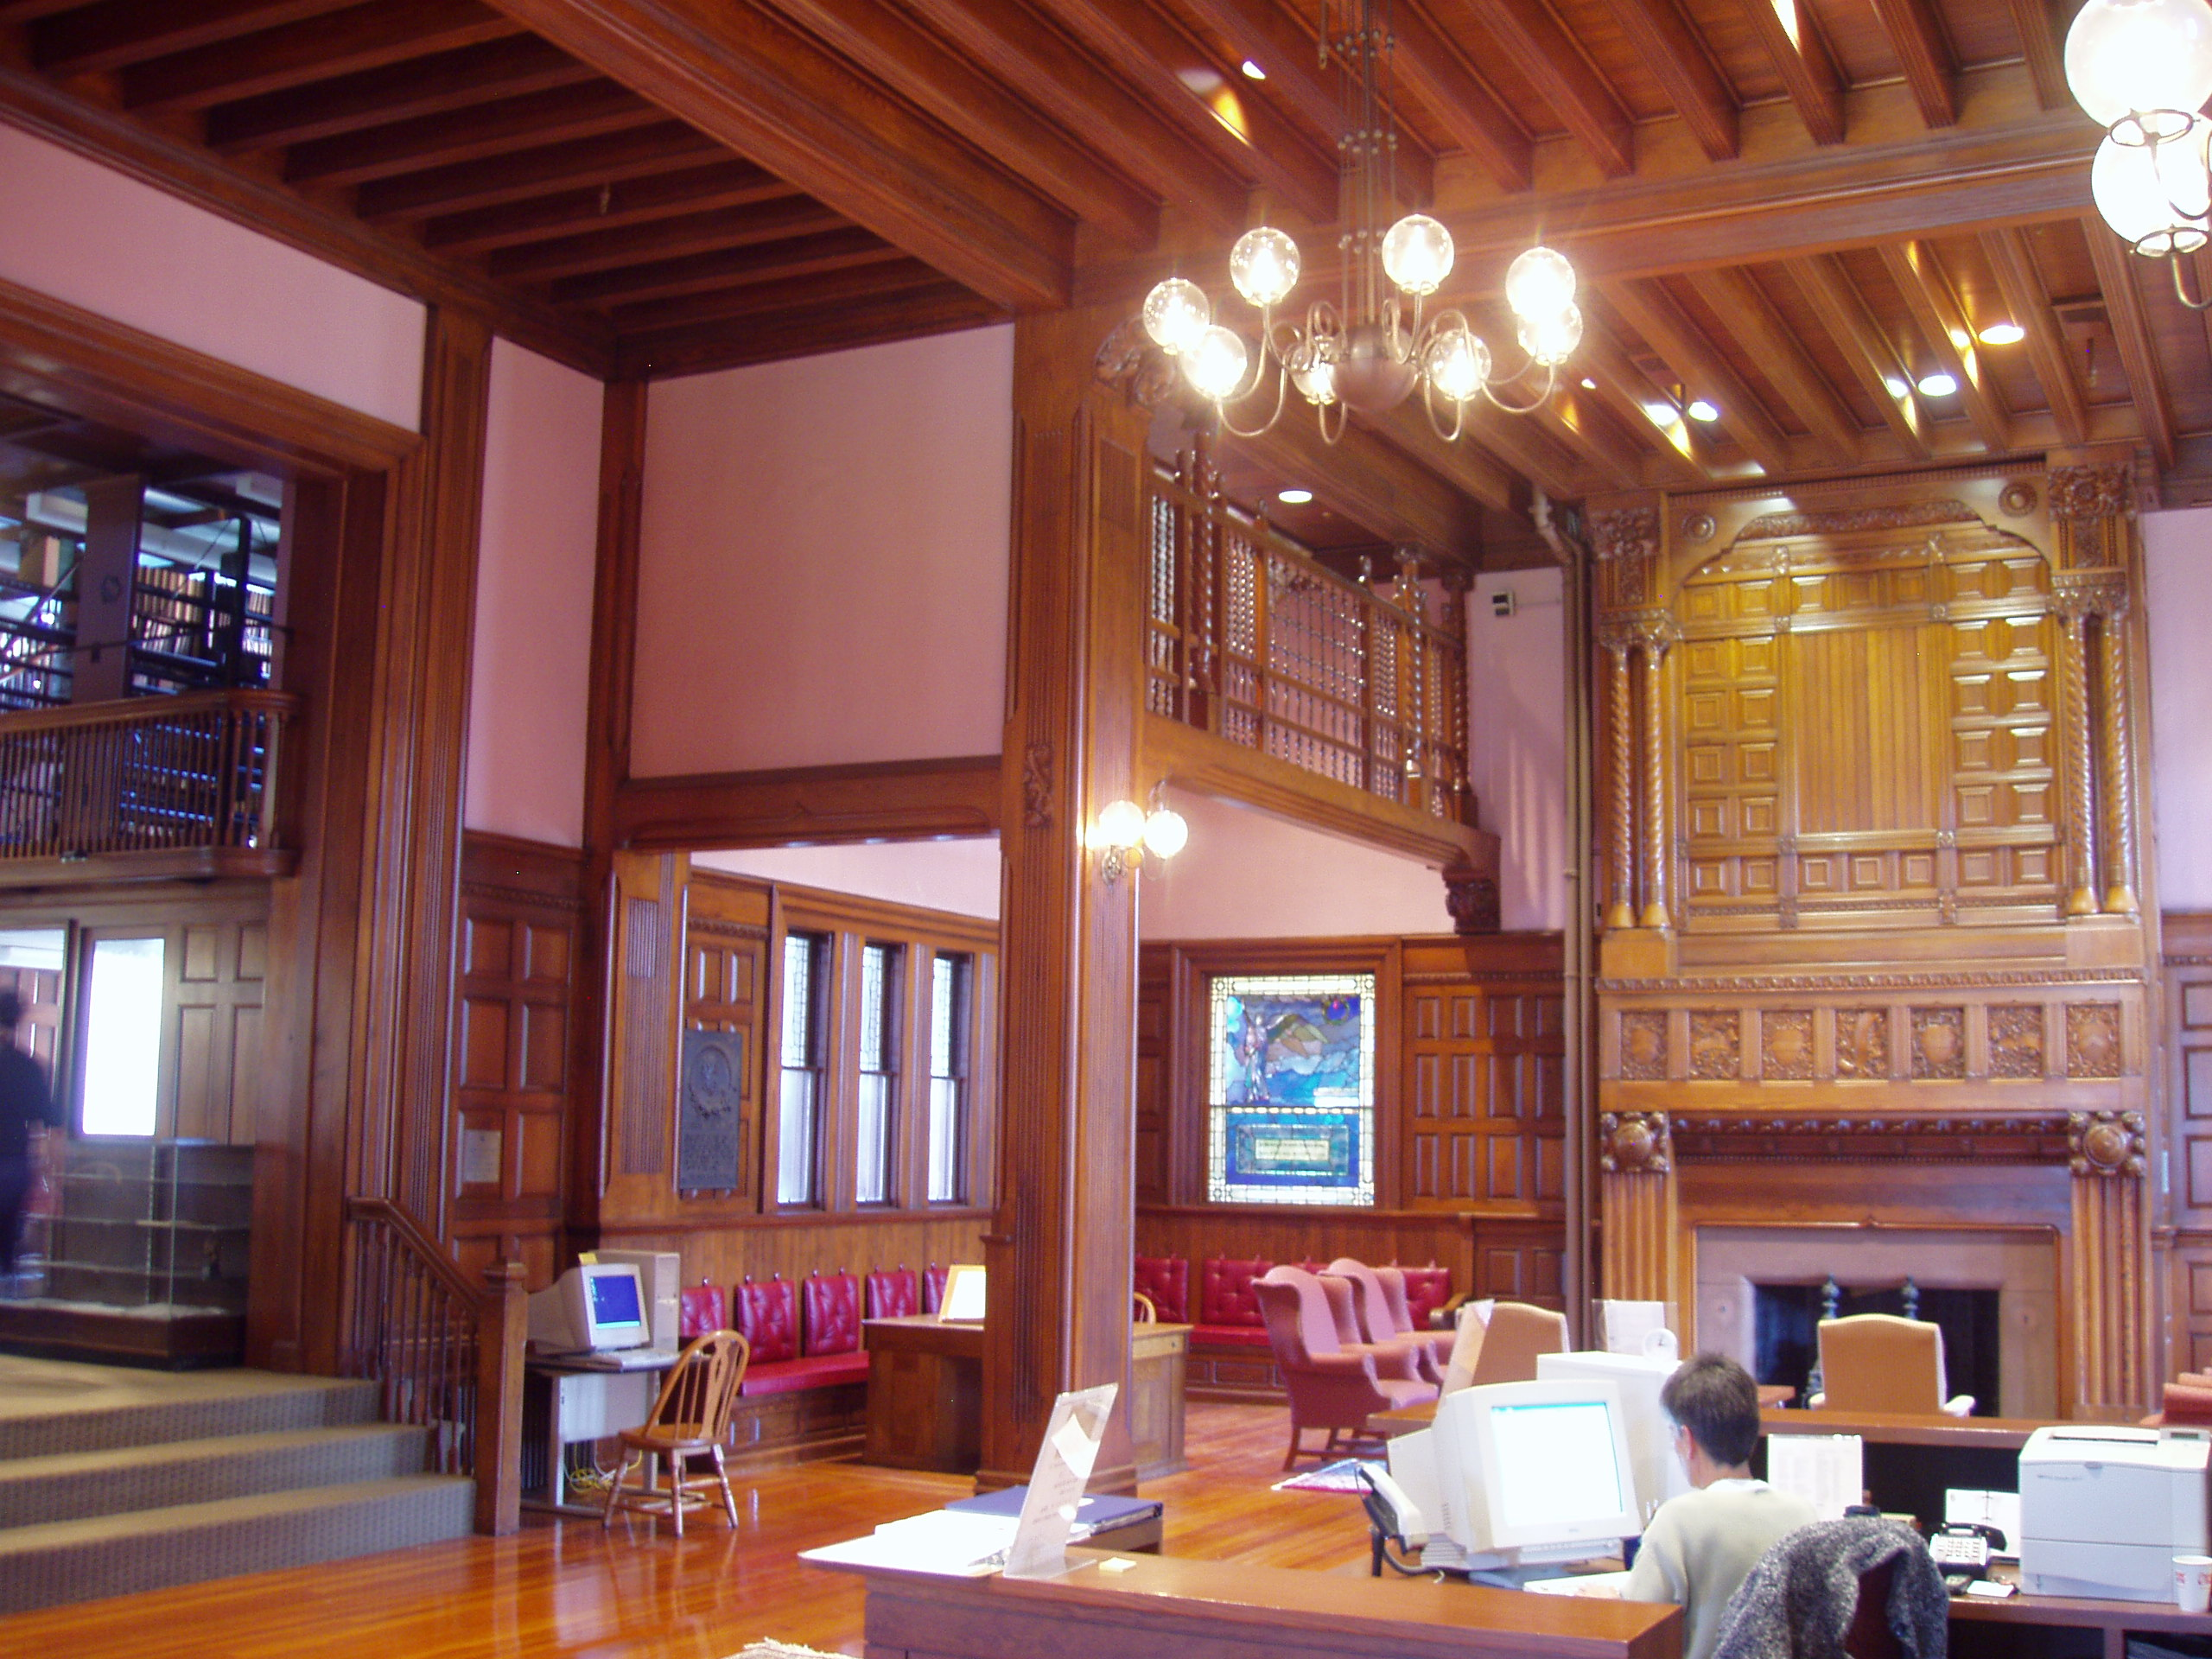 FileThomas Crane Public Library Quincy Massachusetts Interior FireplaceJPG